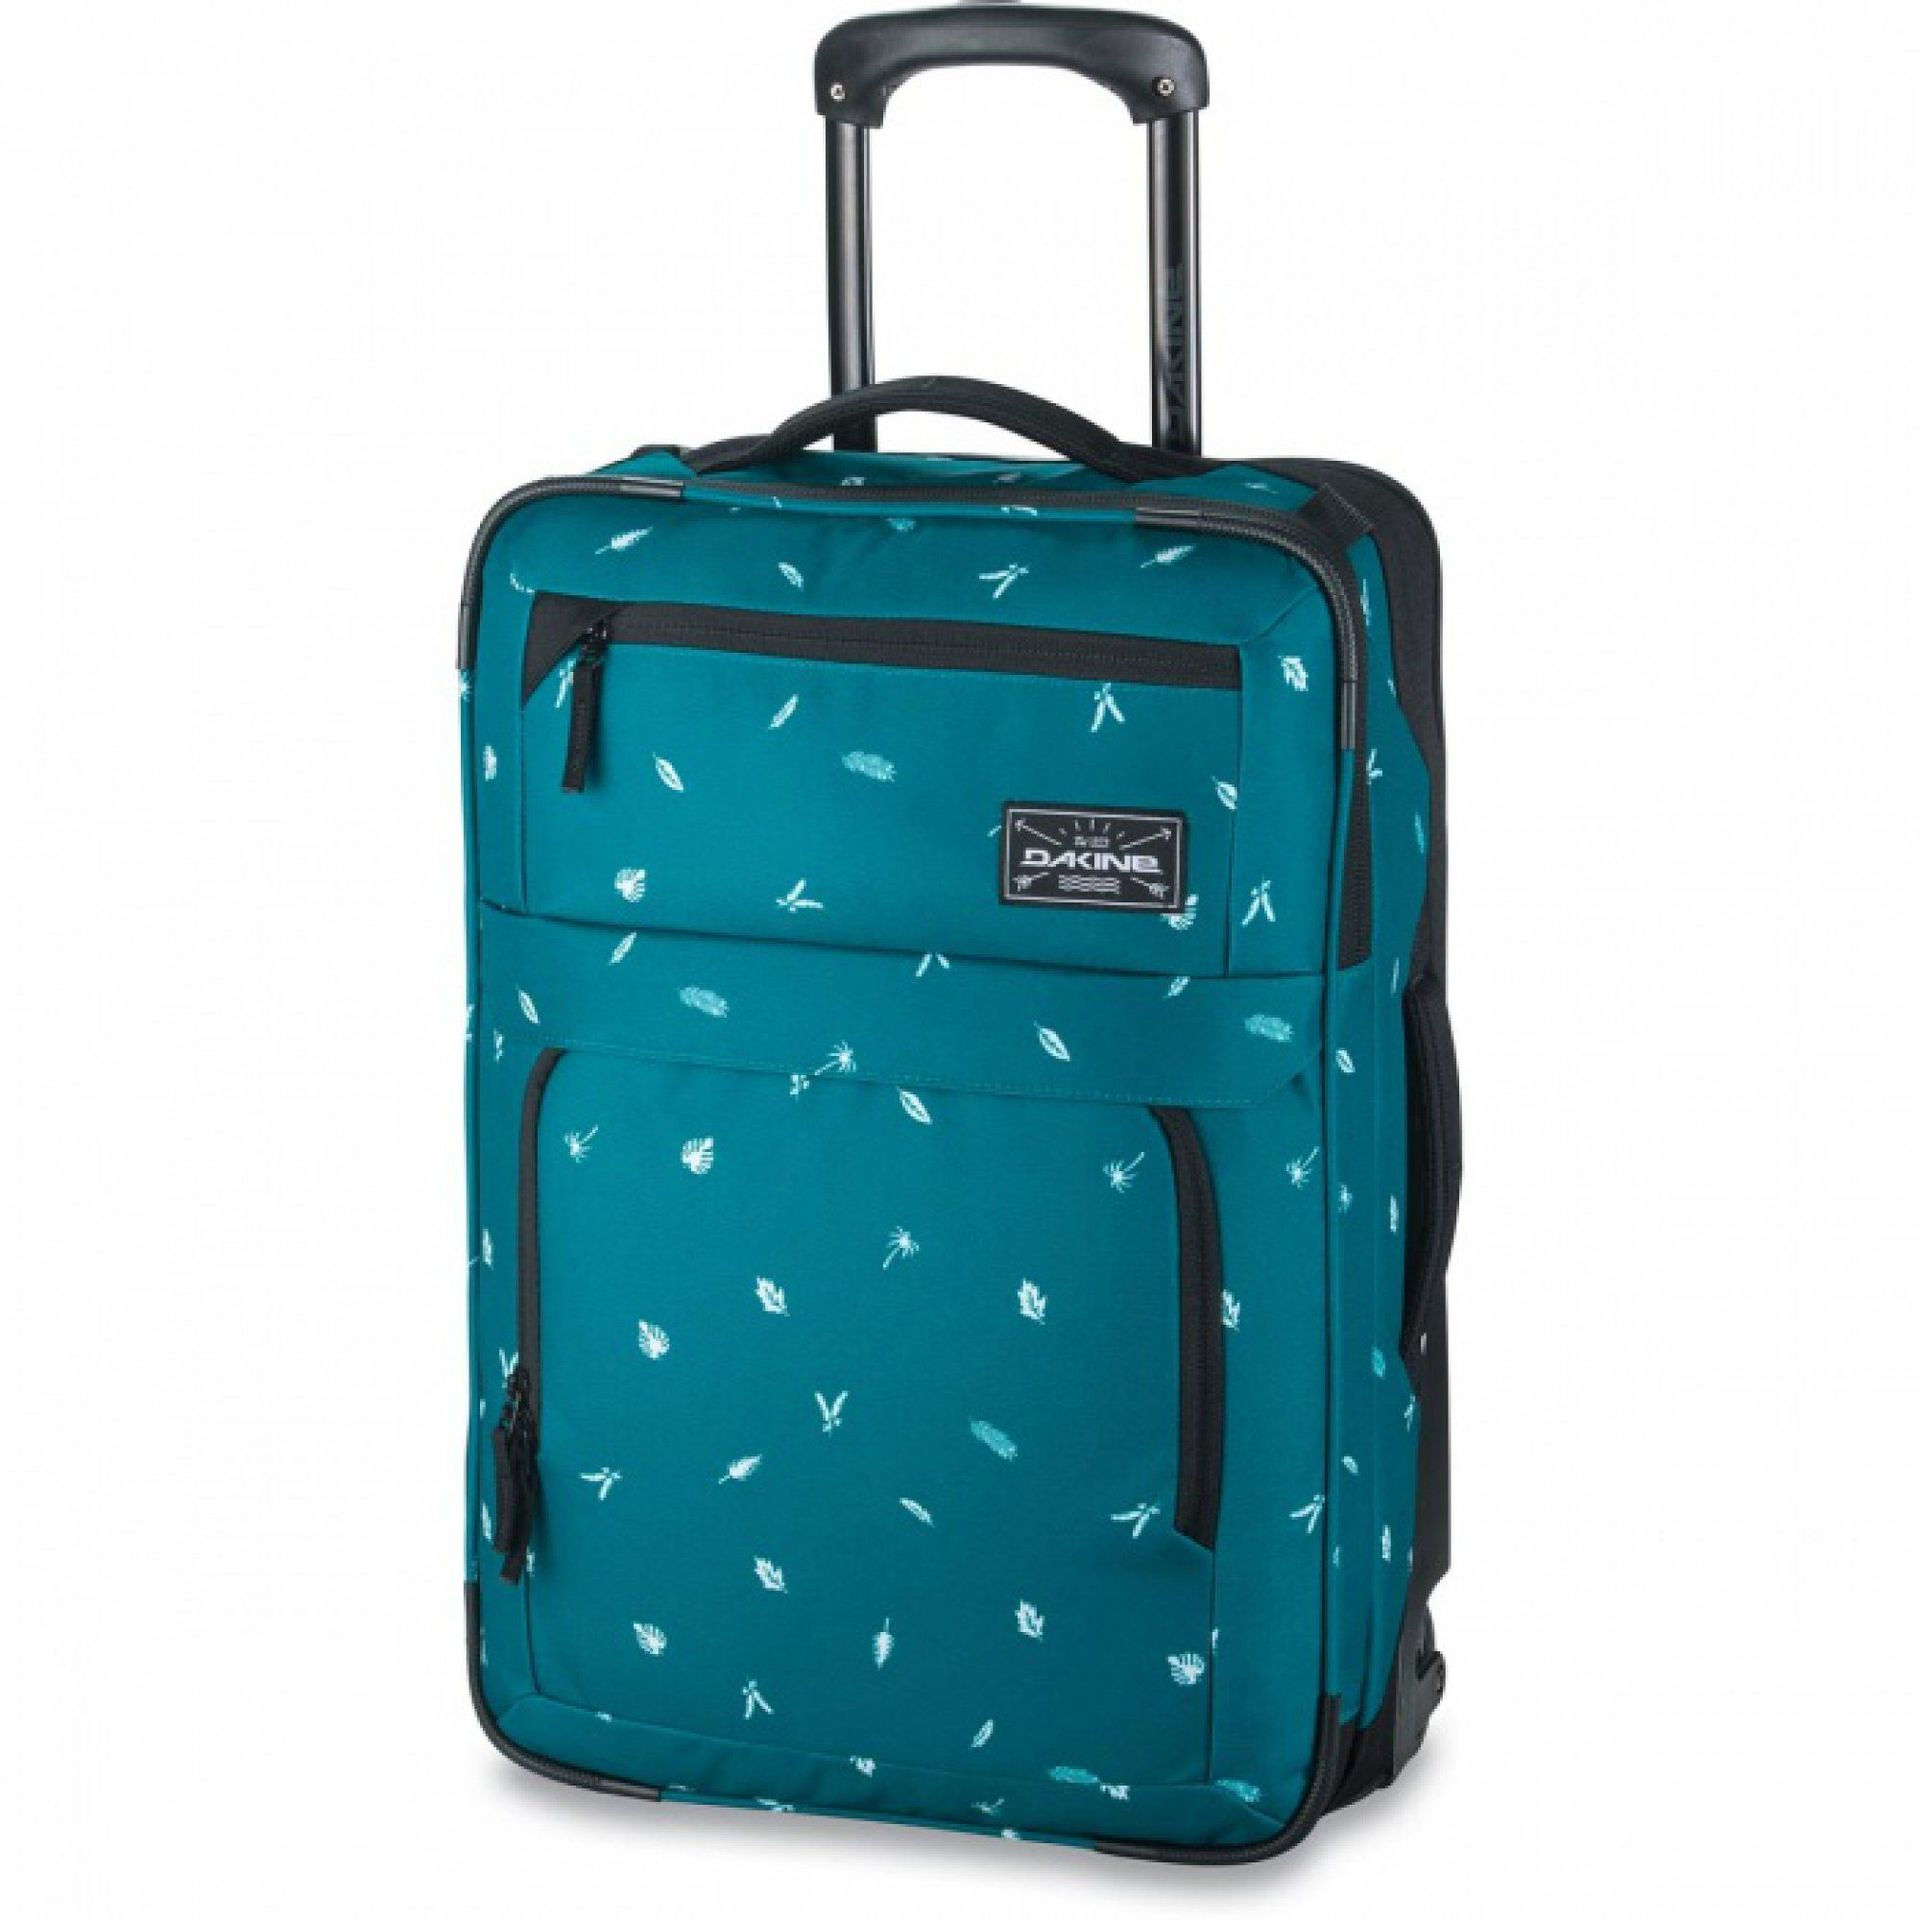 TORBA PODRÓŻNA DAKINE CARRY ON ROLLER DEWILDE